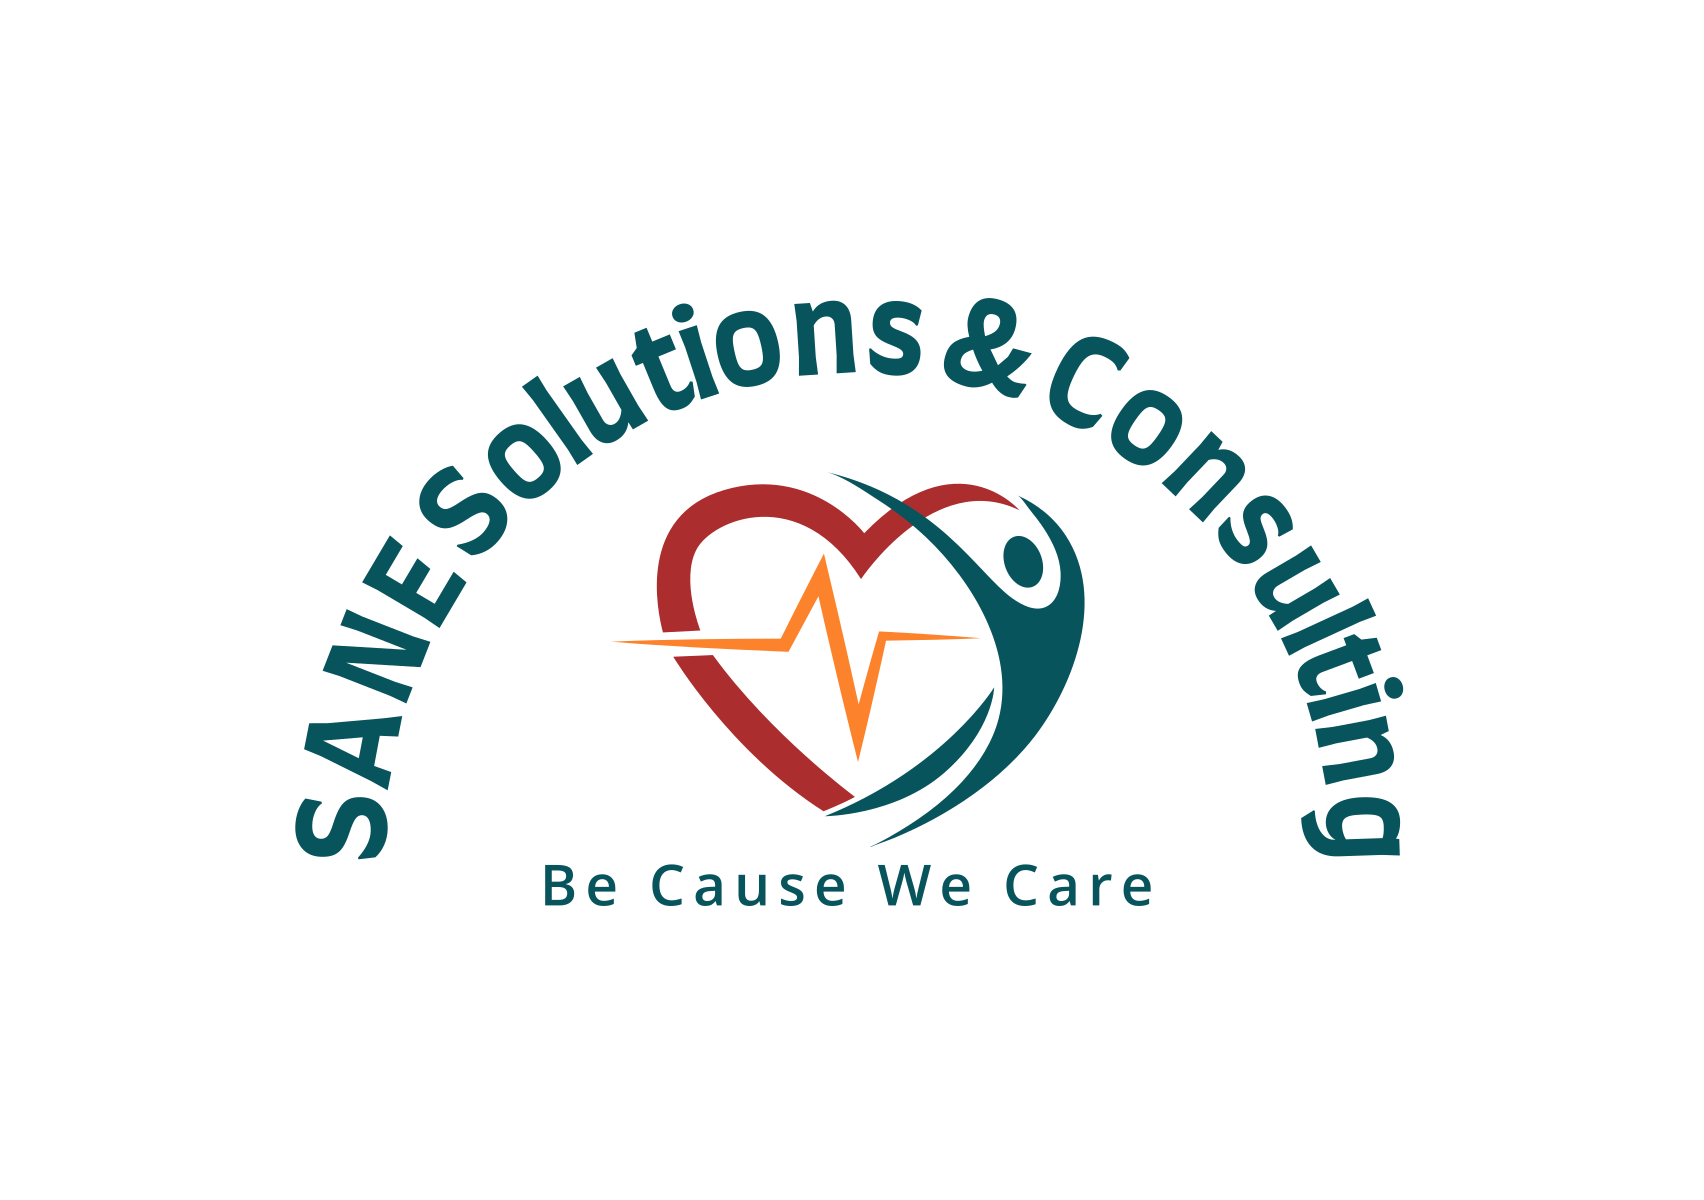 SANE Solutions & Consulting